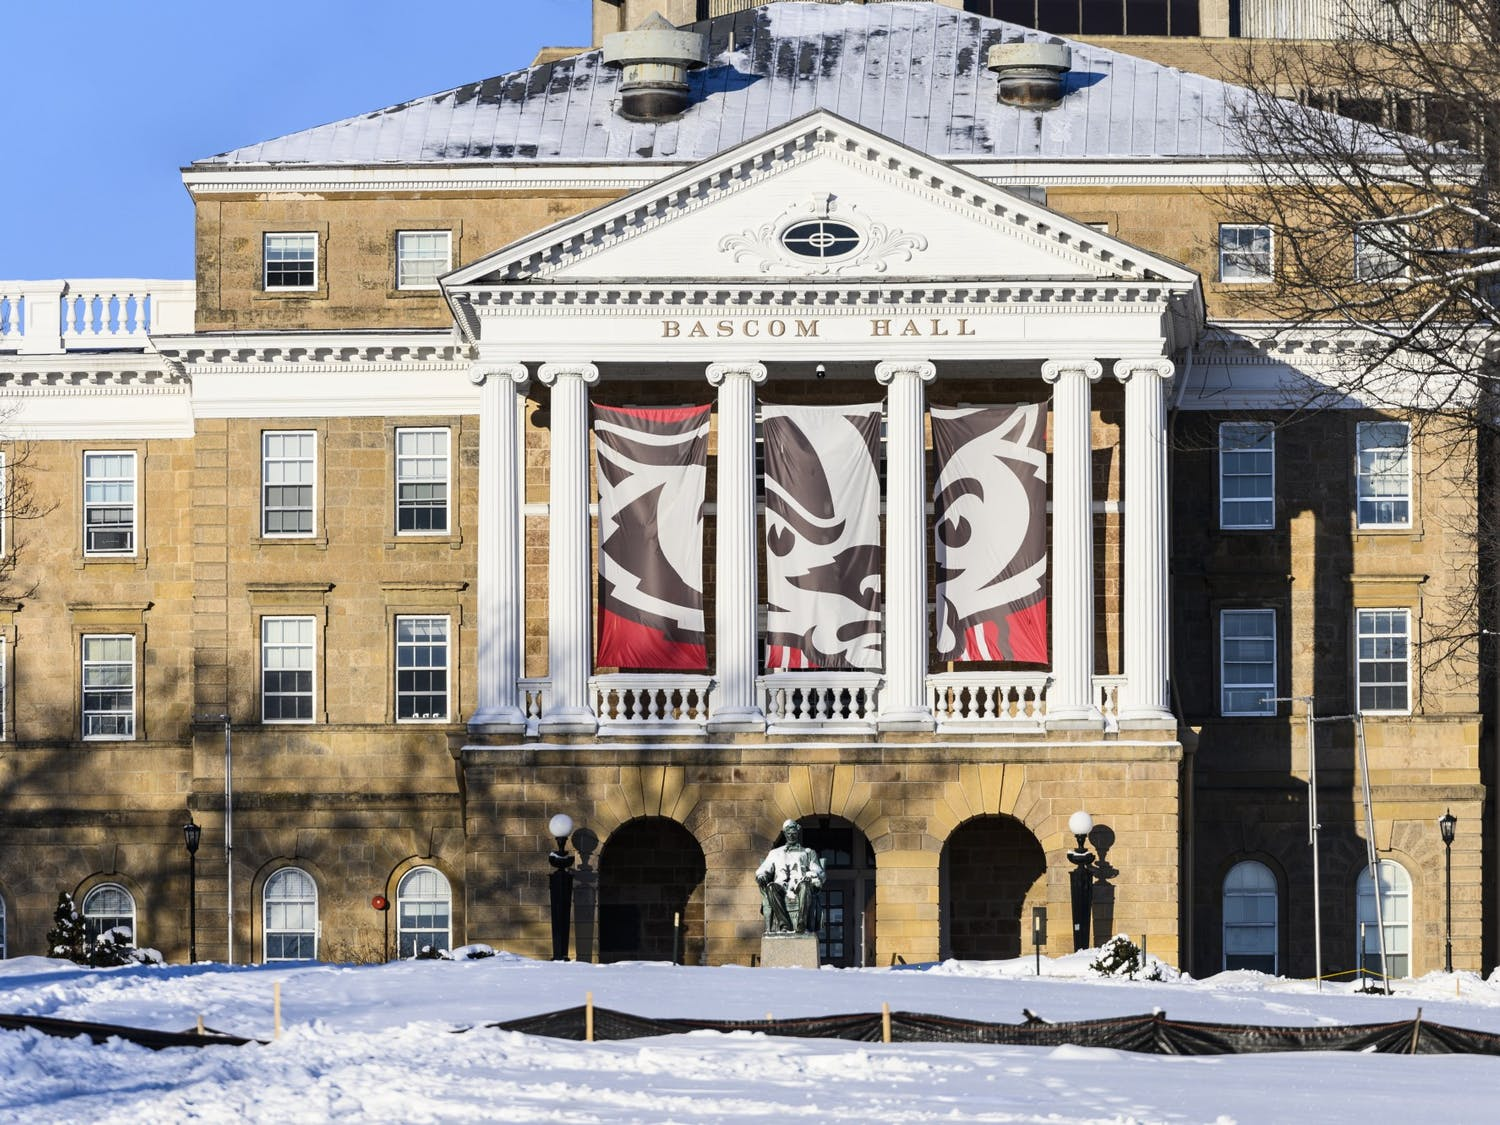 A snow-covered Bascom Hill and Bascom Hall at the University of Wisconsin-Madison